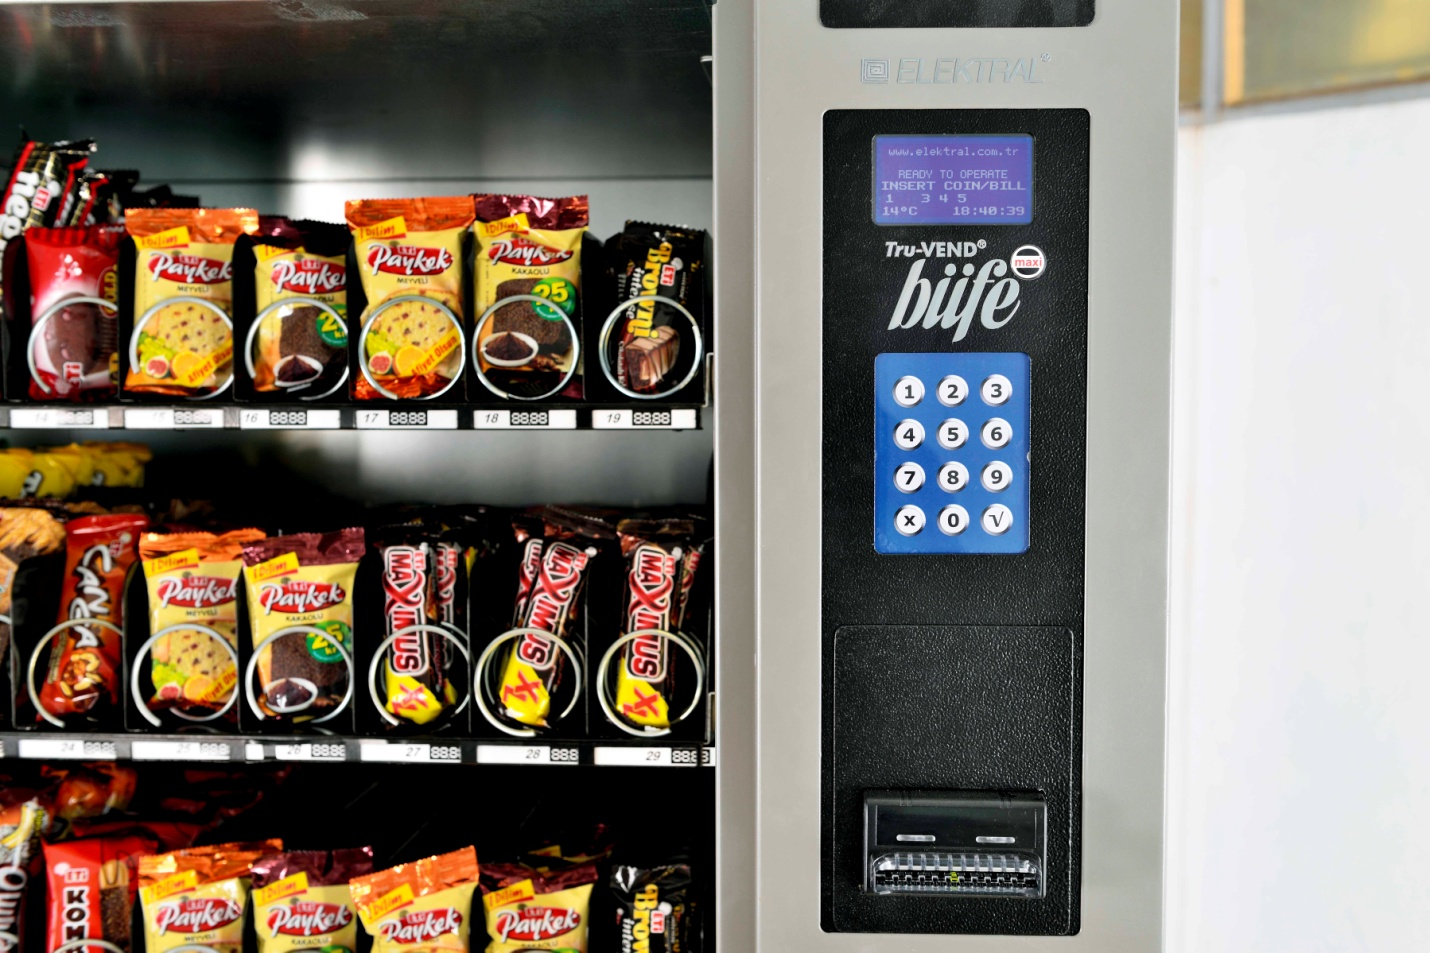 Tru Coffee Maker Not Working : VEND?NG MACH?NE D?SEPENSES: The perfect coffee vending machine for your business